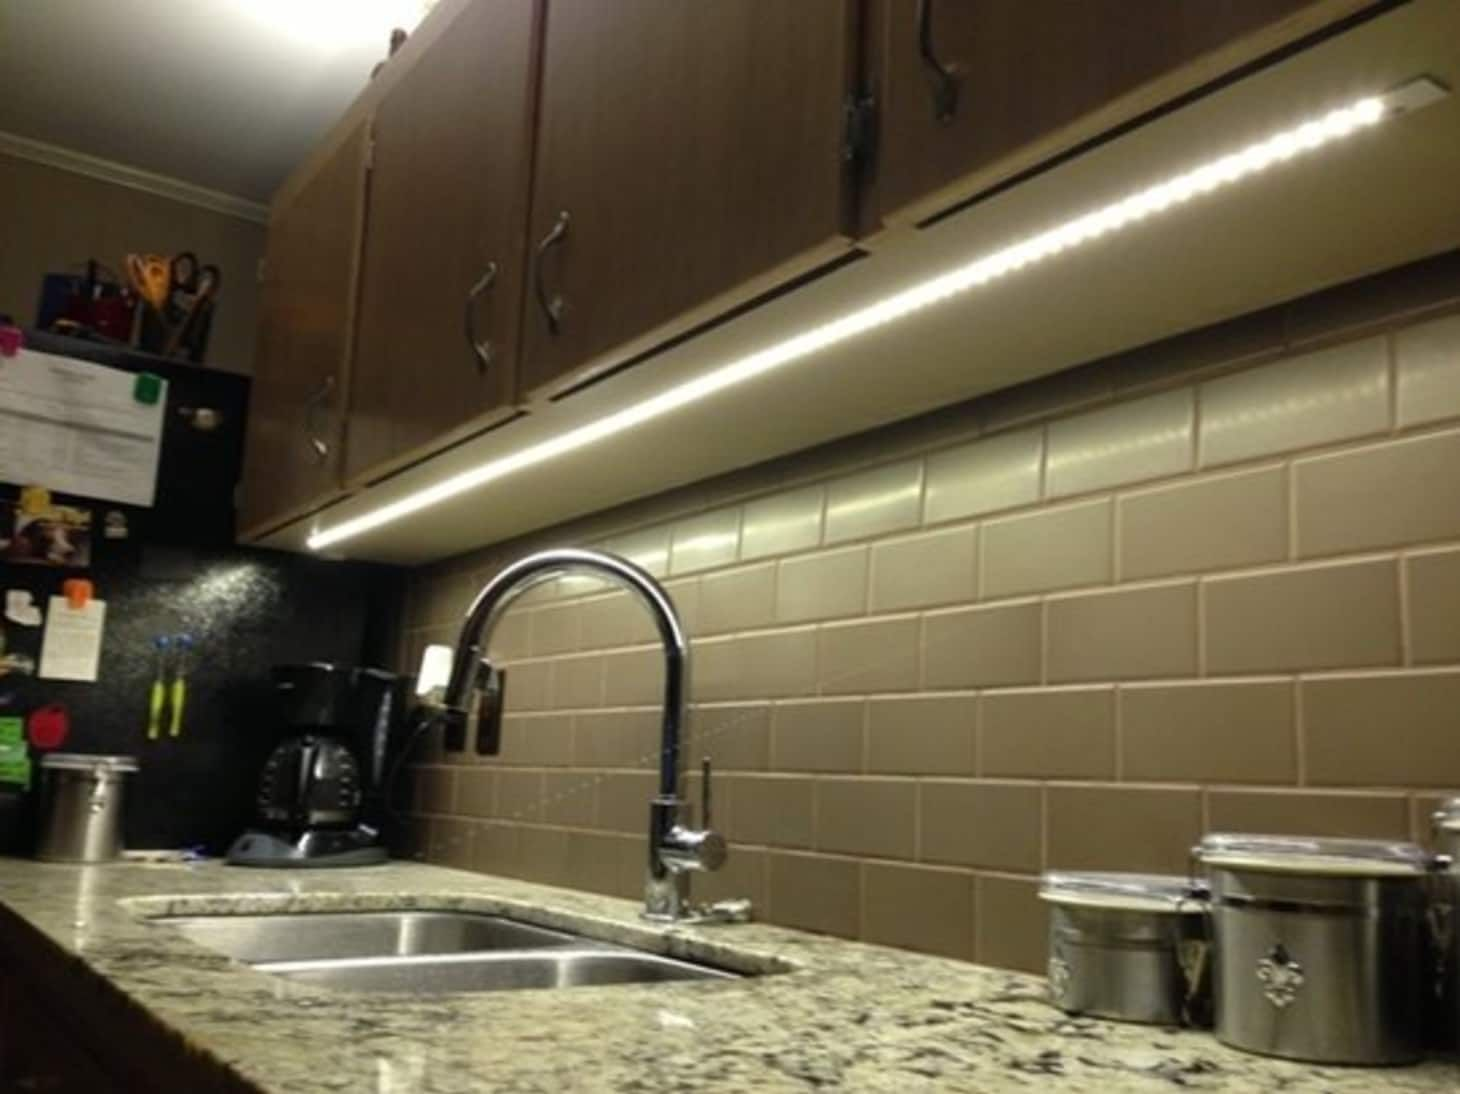 4 Types Of Under Cabinet Lighting Pros Cons And Shopping Advice Eclairage Evier Tablette Cuisine Eclairage Cuisine